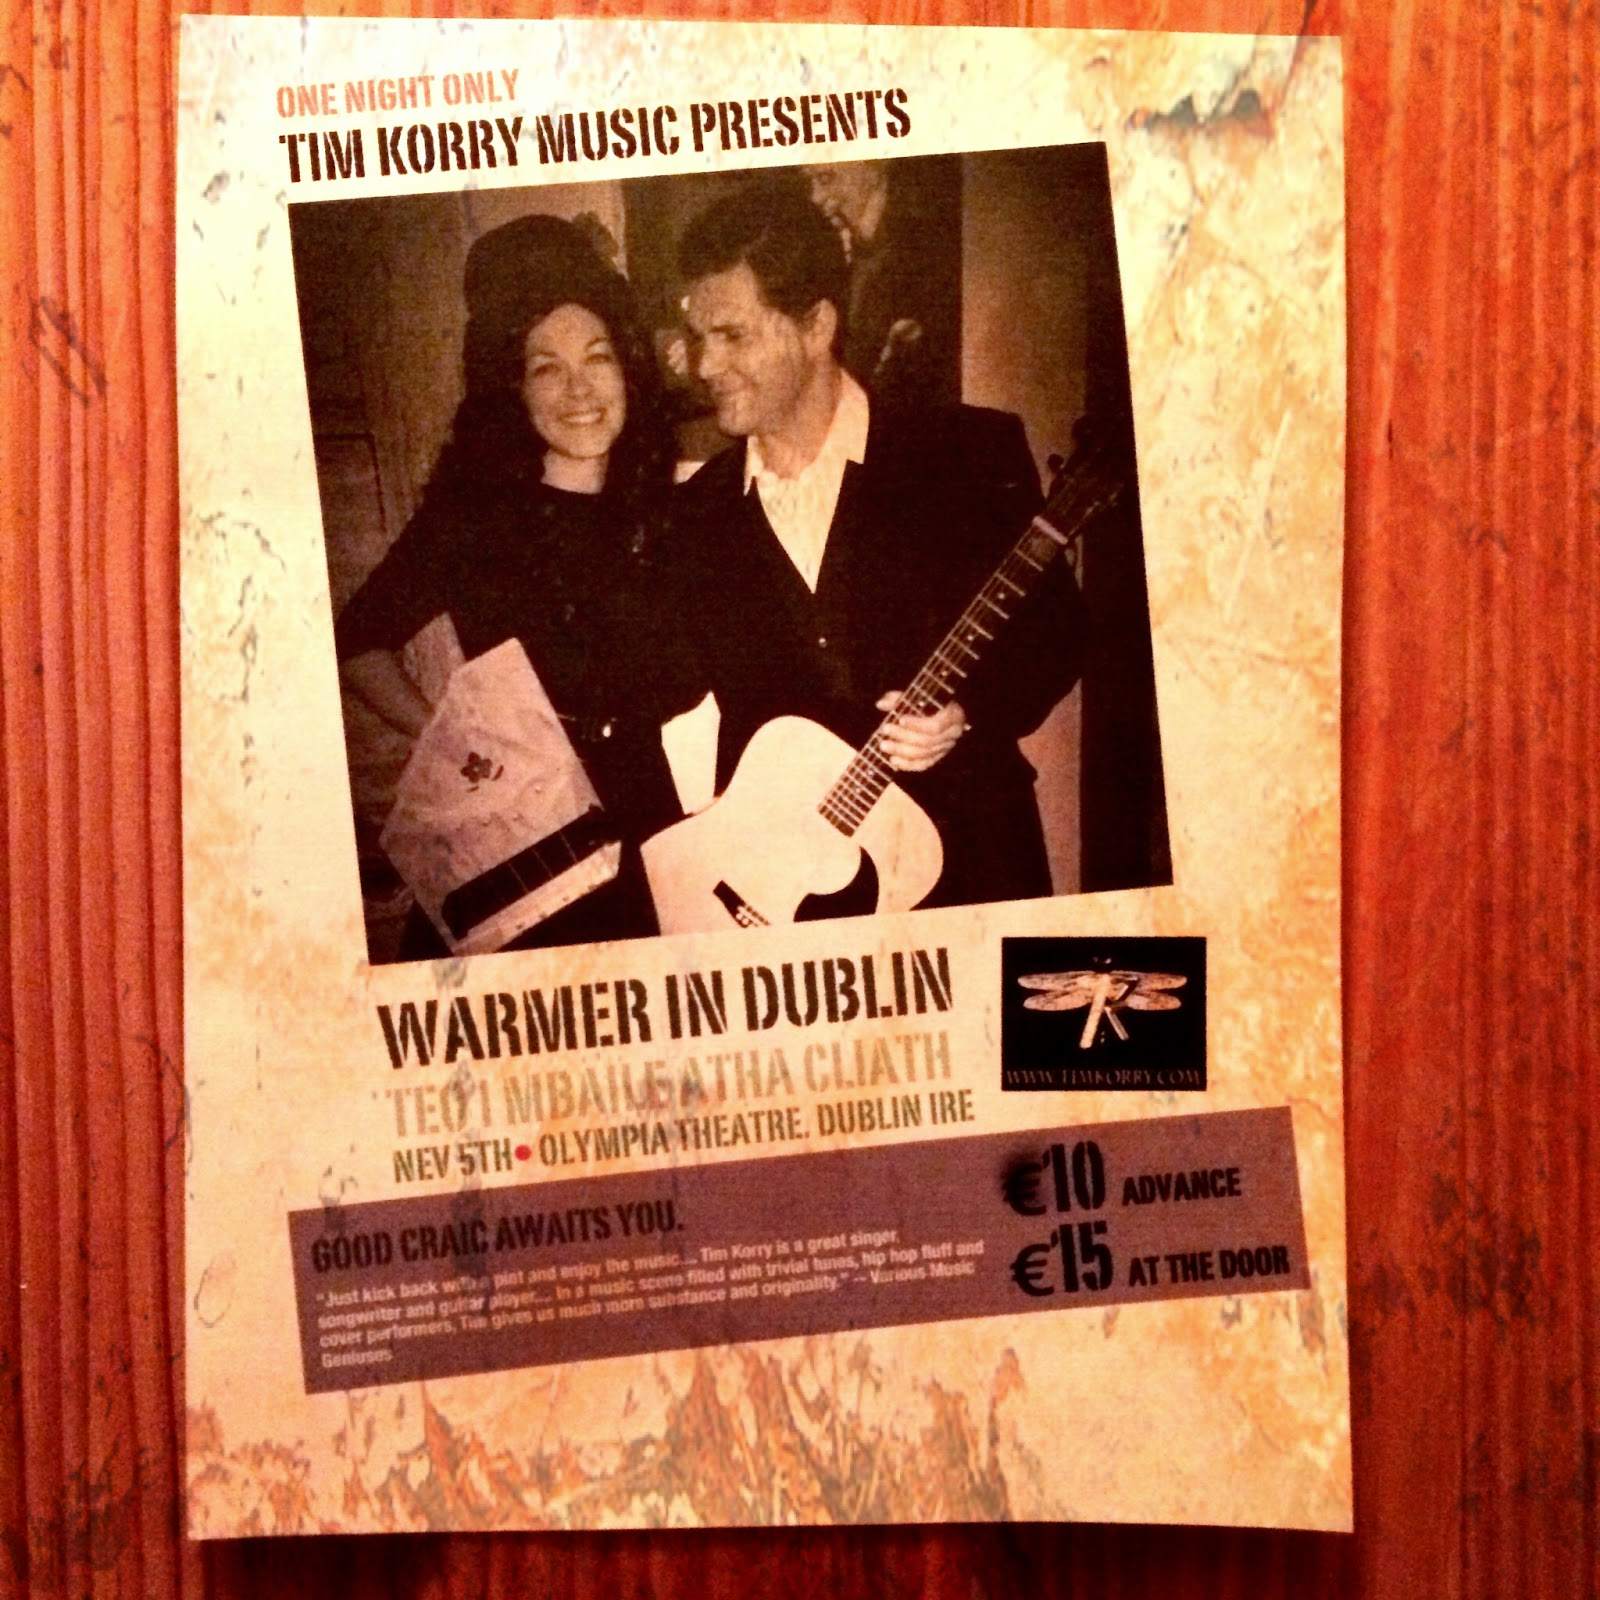 http://timkorry.bandcamp.com/track/warmer-in-dublin